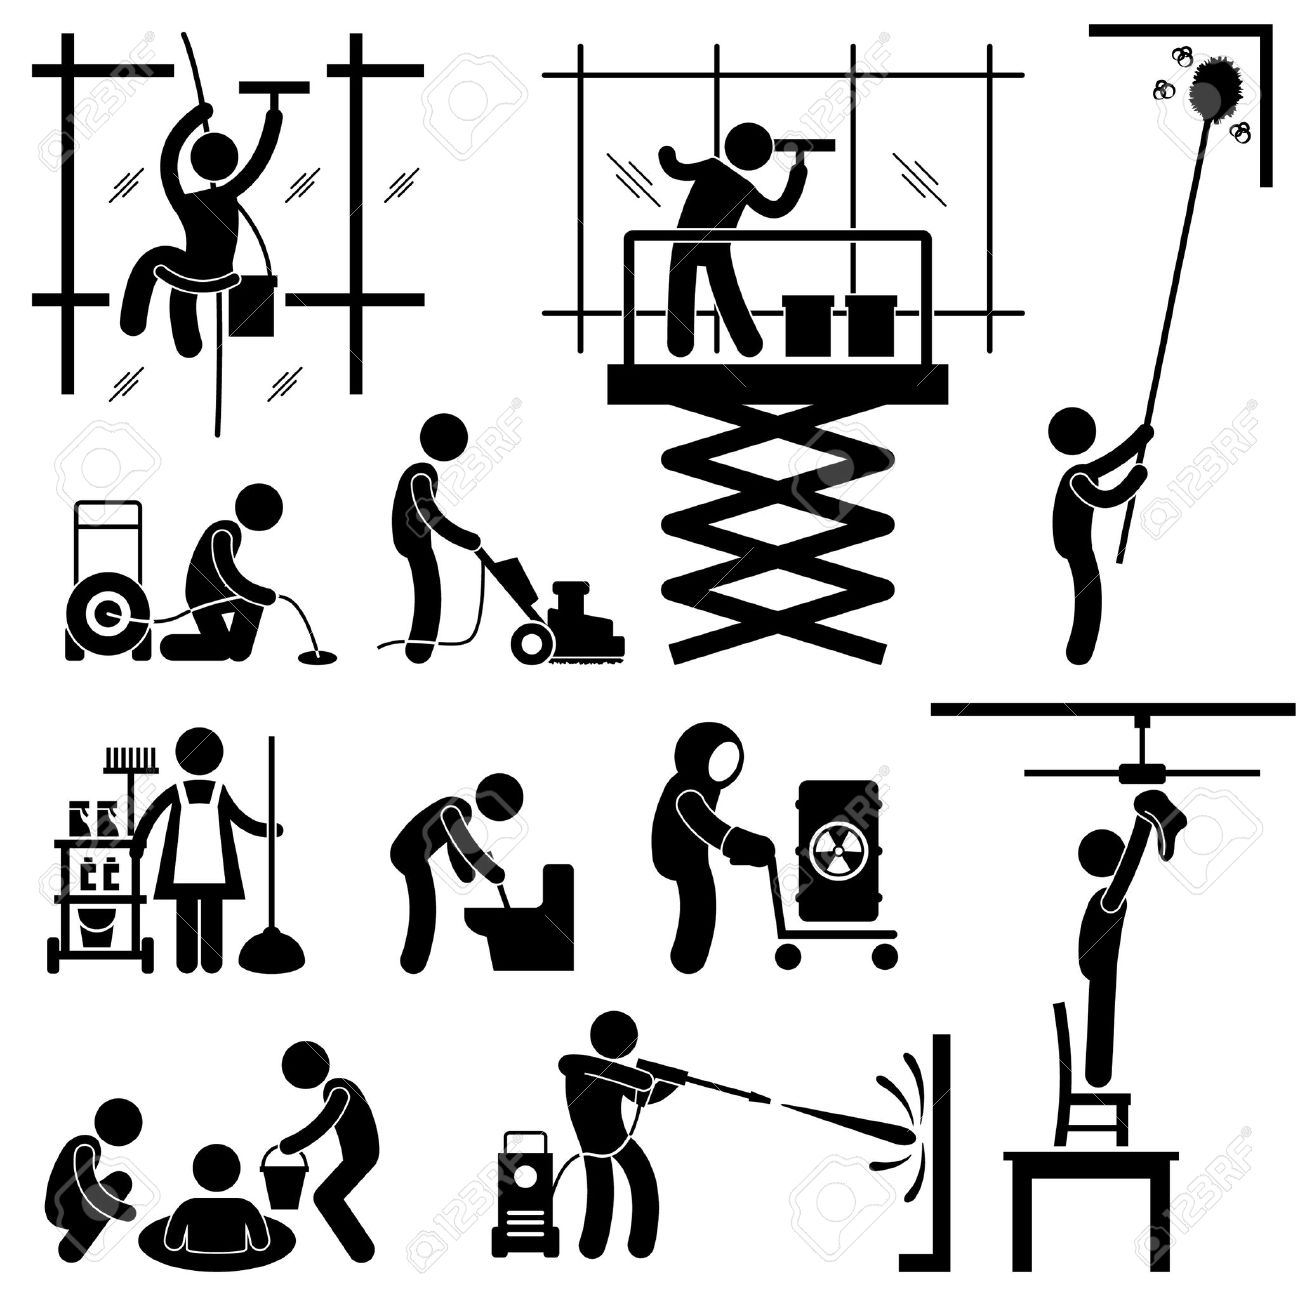 6 426 cleaning service stock illustrations cliparts and royalty cleaning service industrial cleaning services risky cleaner job working stick figure pictogram icon